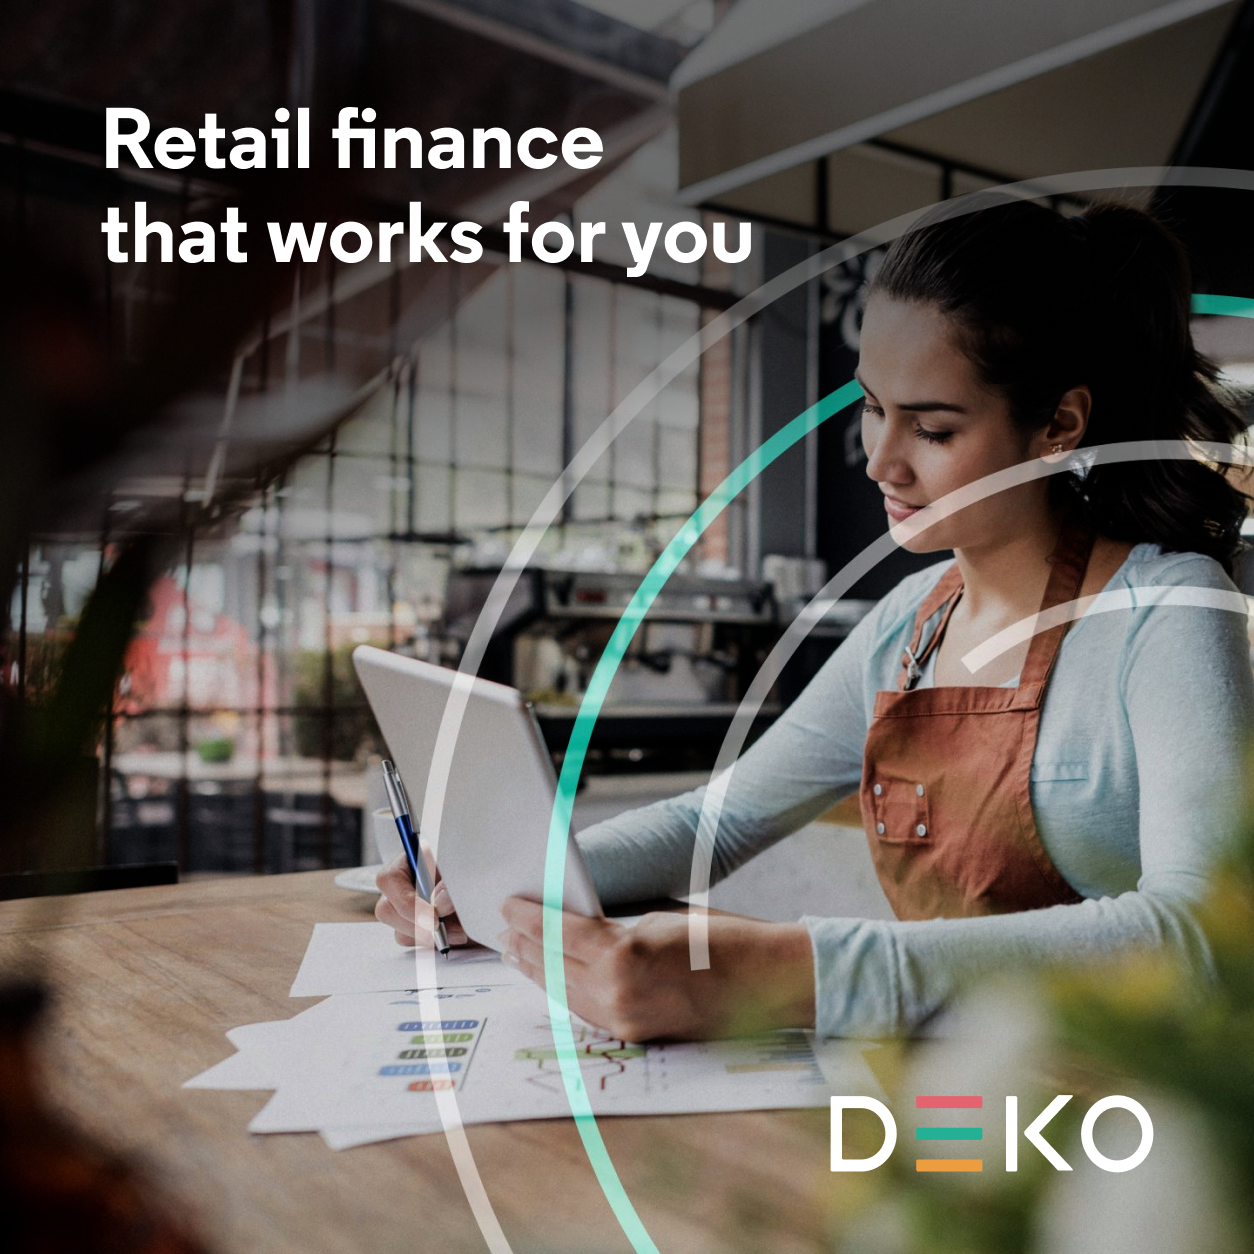 Retail finance that works for you